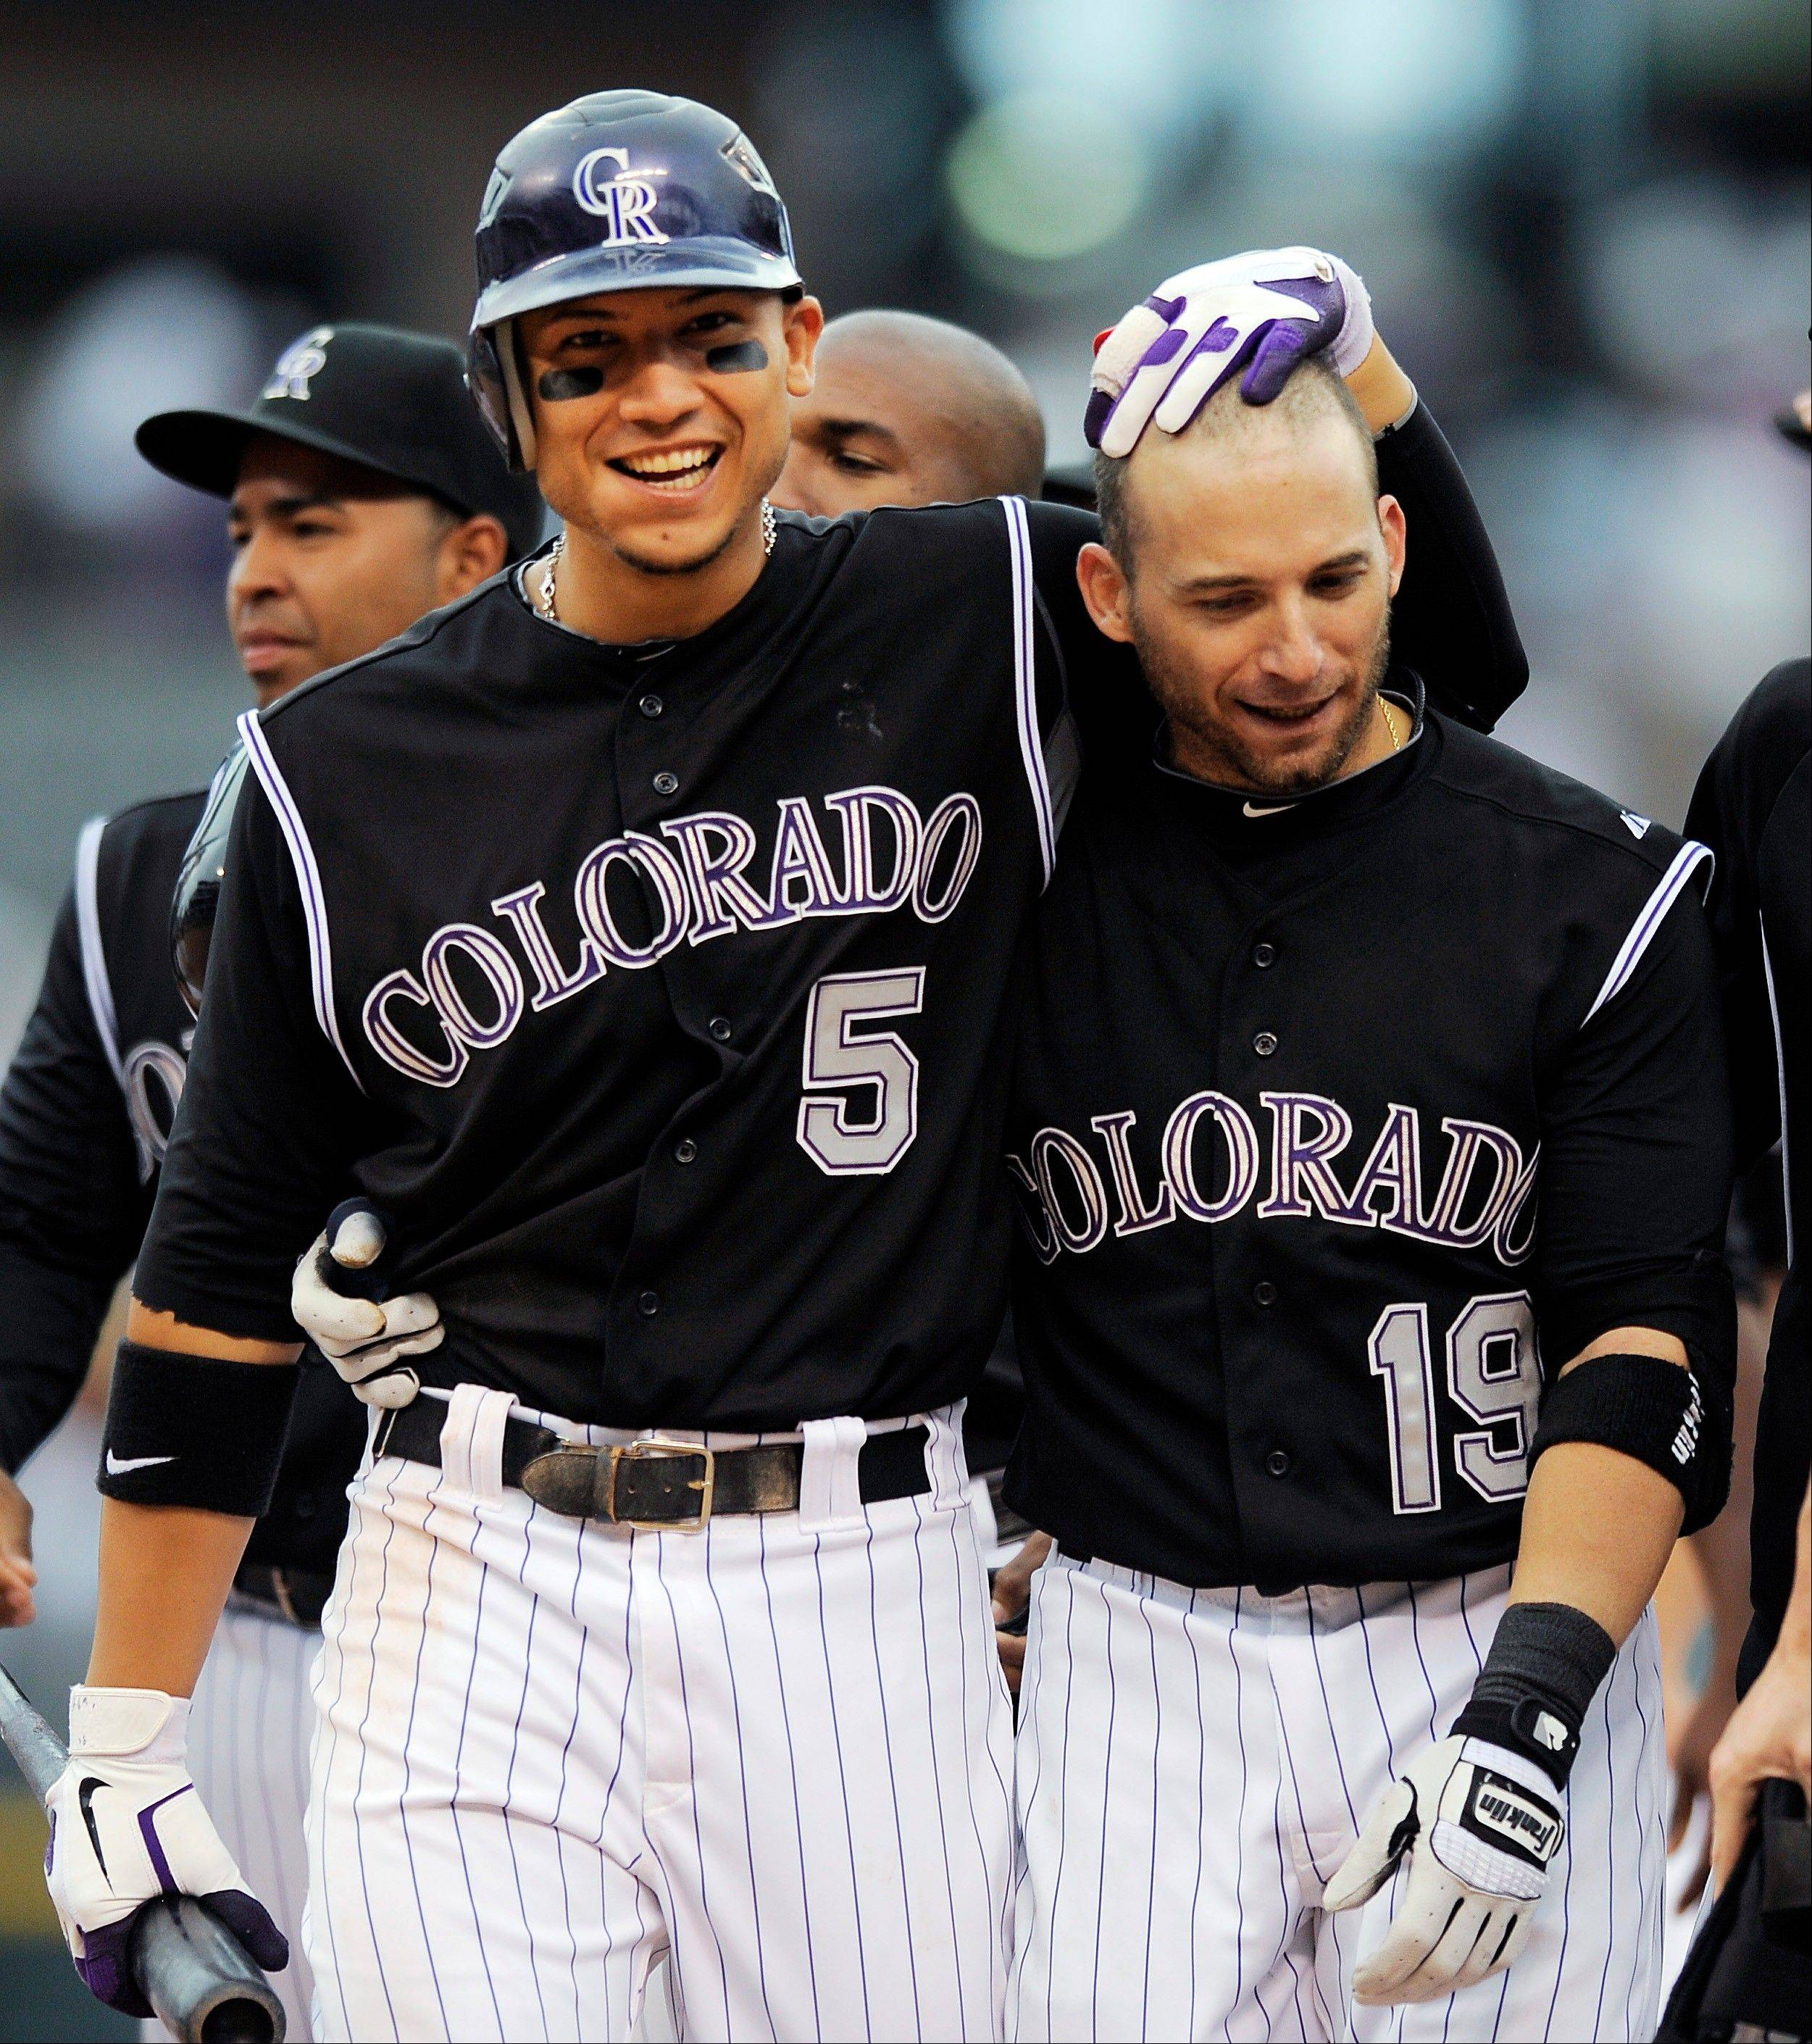 The Rockies' Carlos Gonzalez, left, congratulates Marco Scutaro after Scutaro's game-winning hit in the 11th inning Thursday against the Nationals.